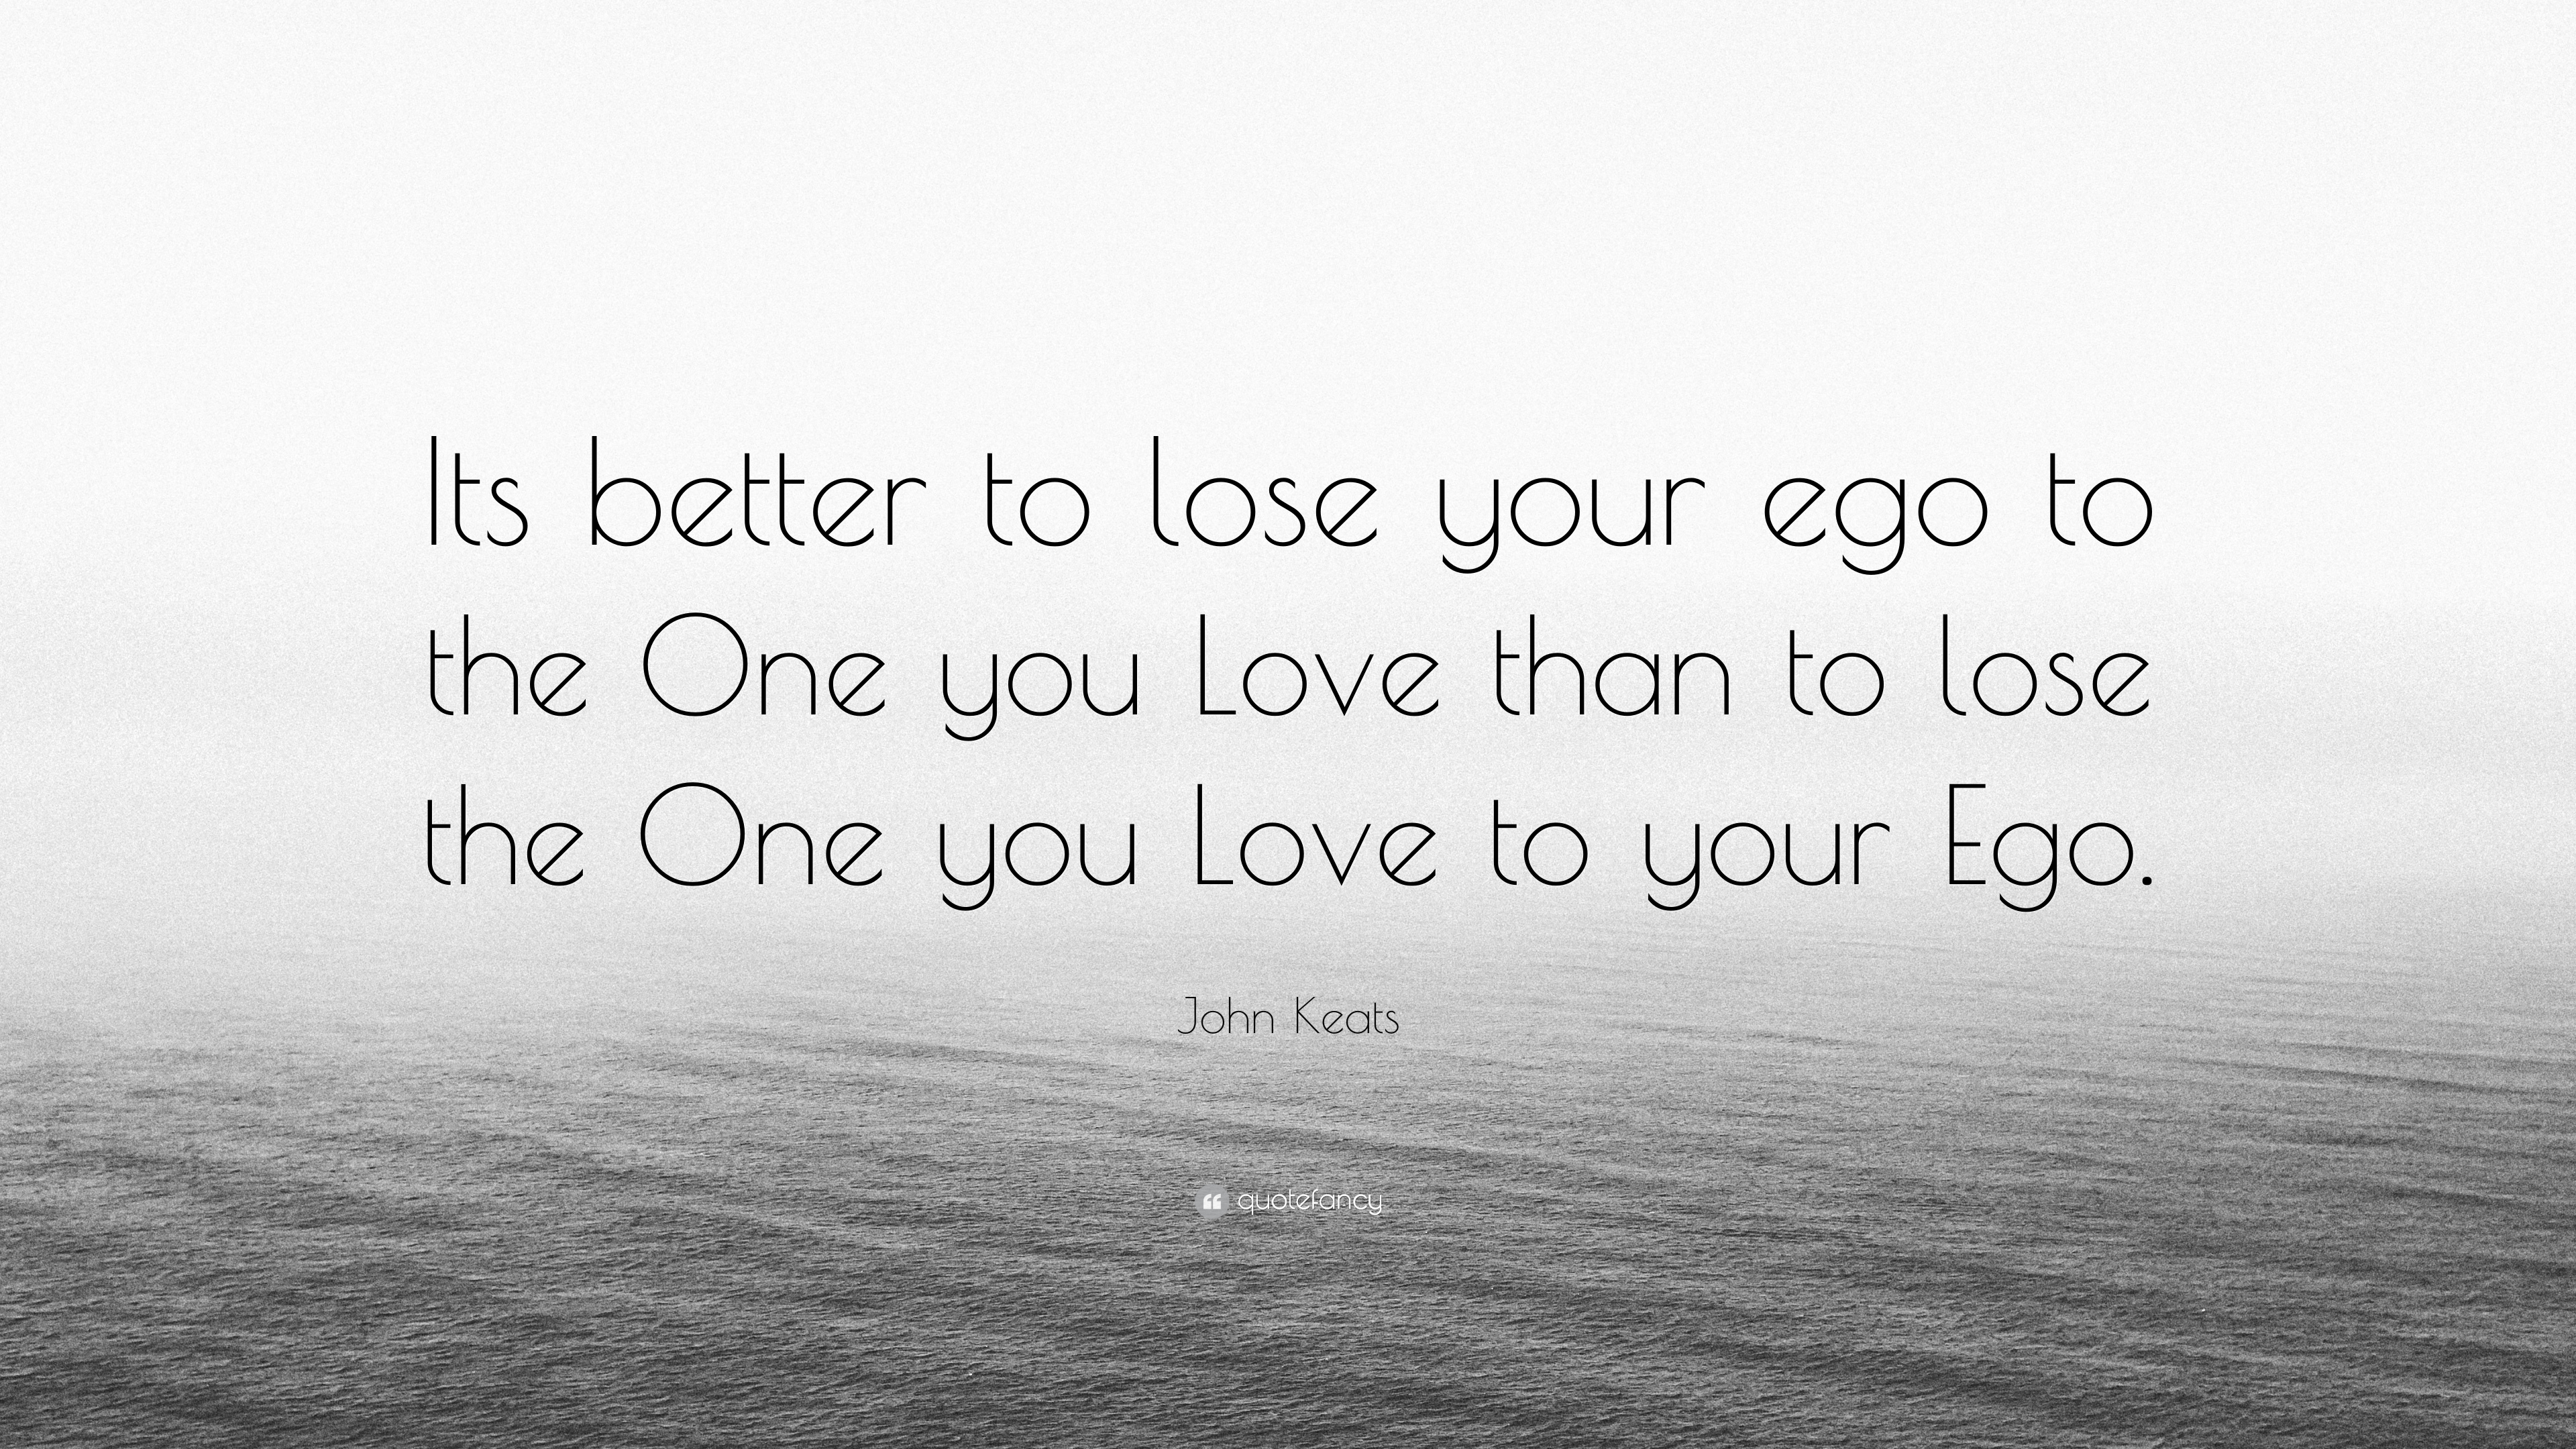 John Keats Quote: U201cIts Better To Lose Your Ego To The One You Love